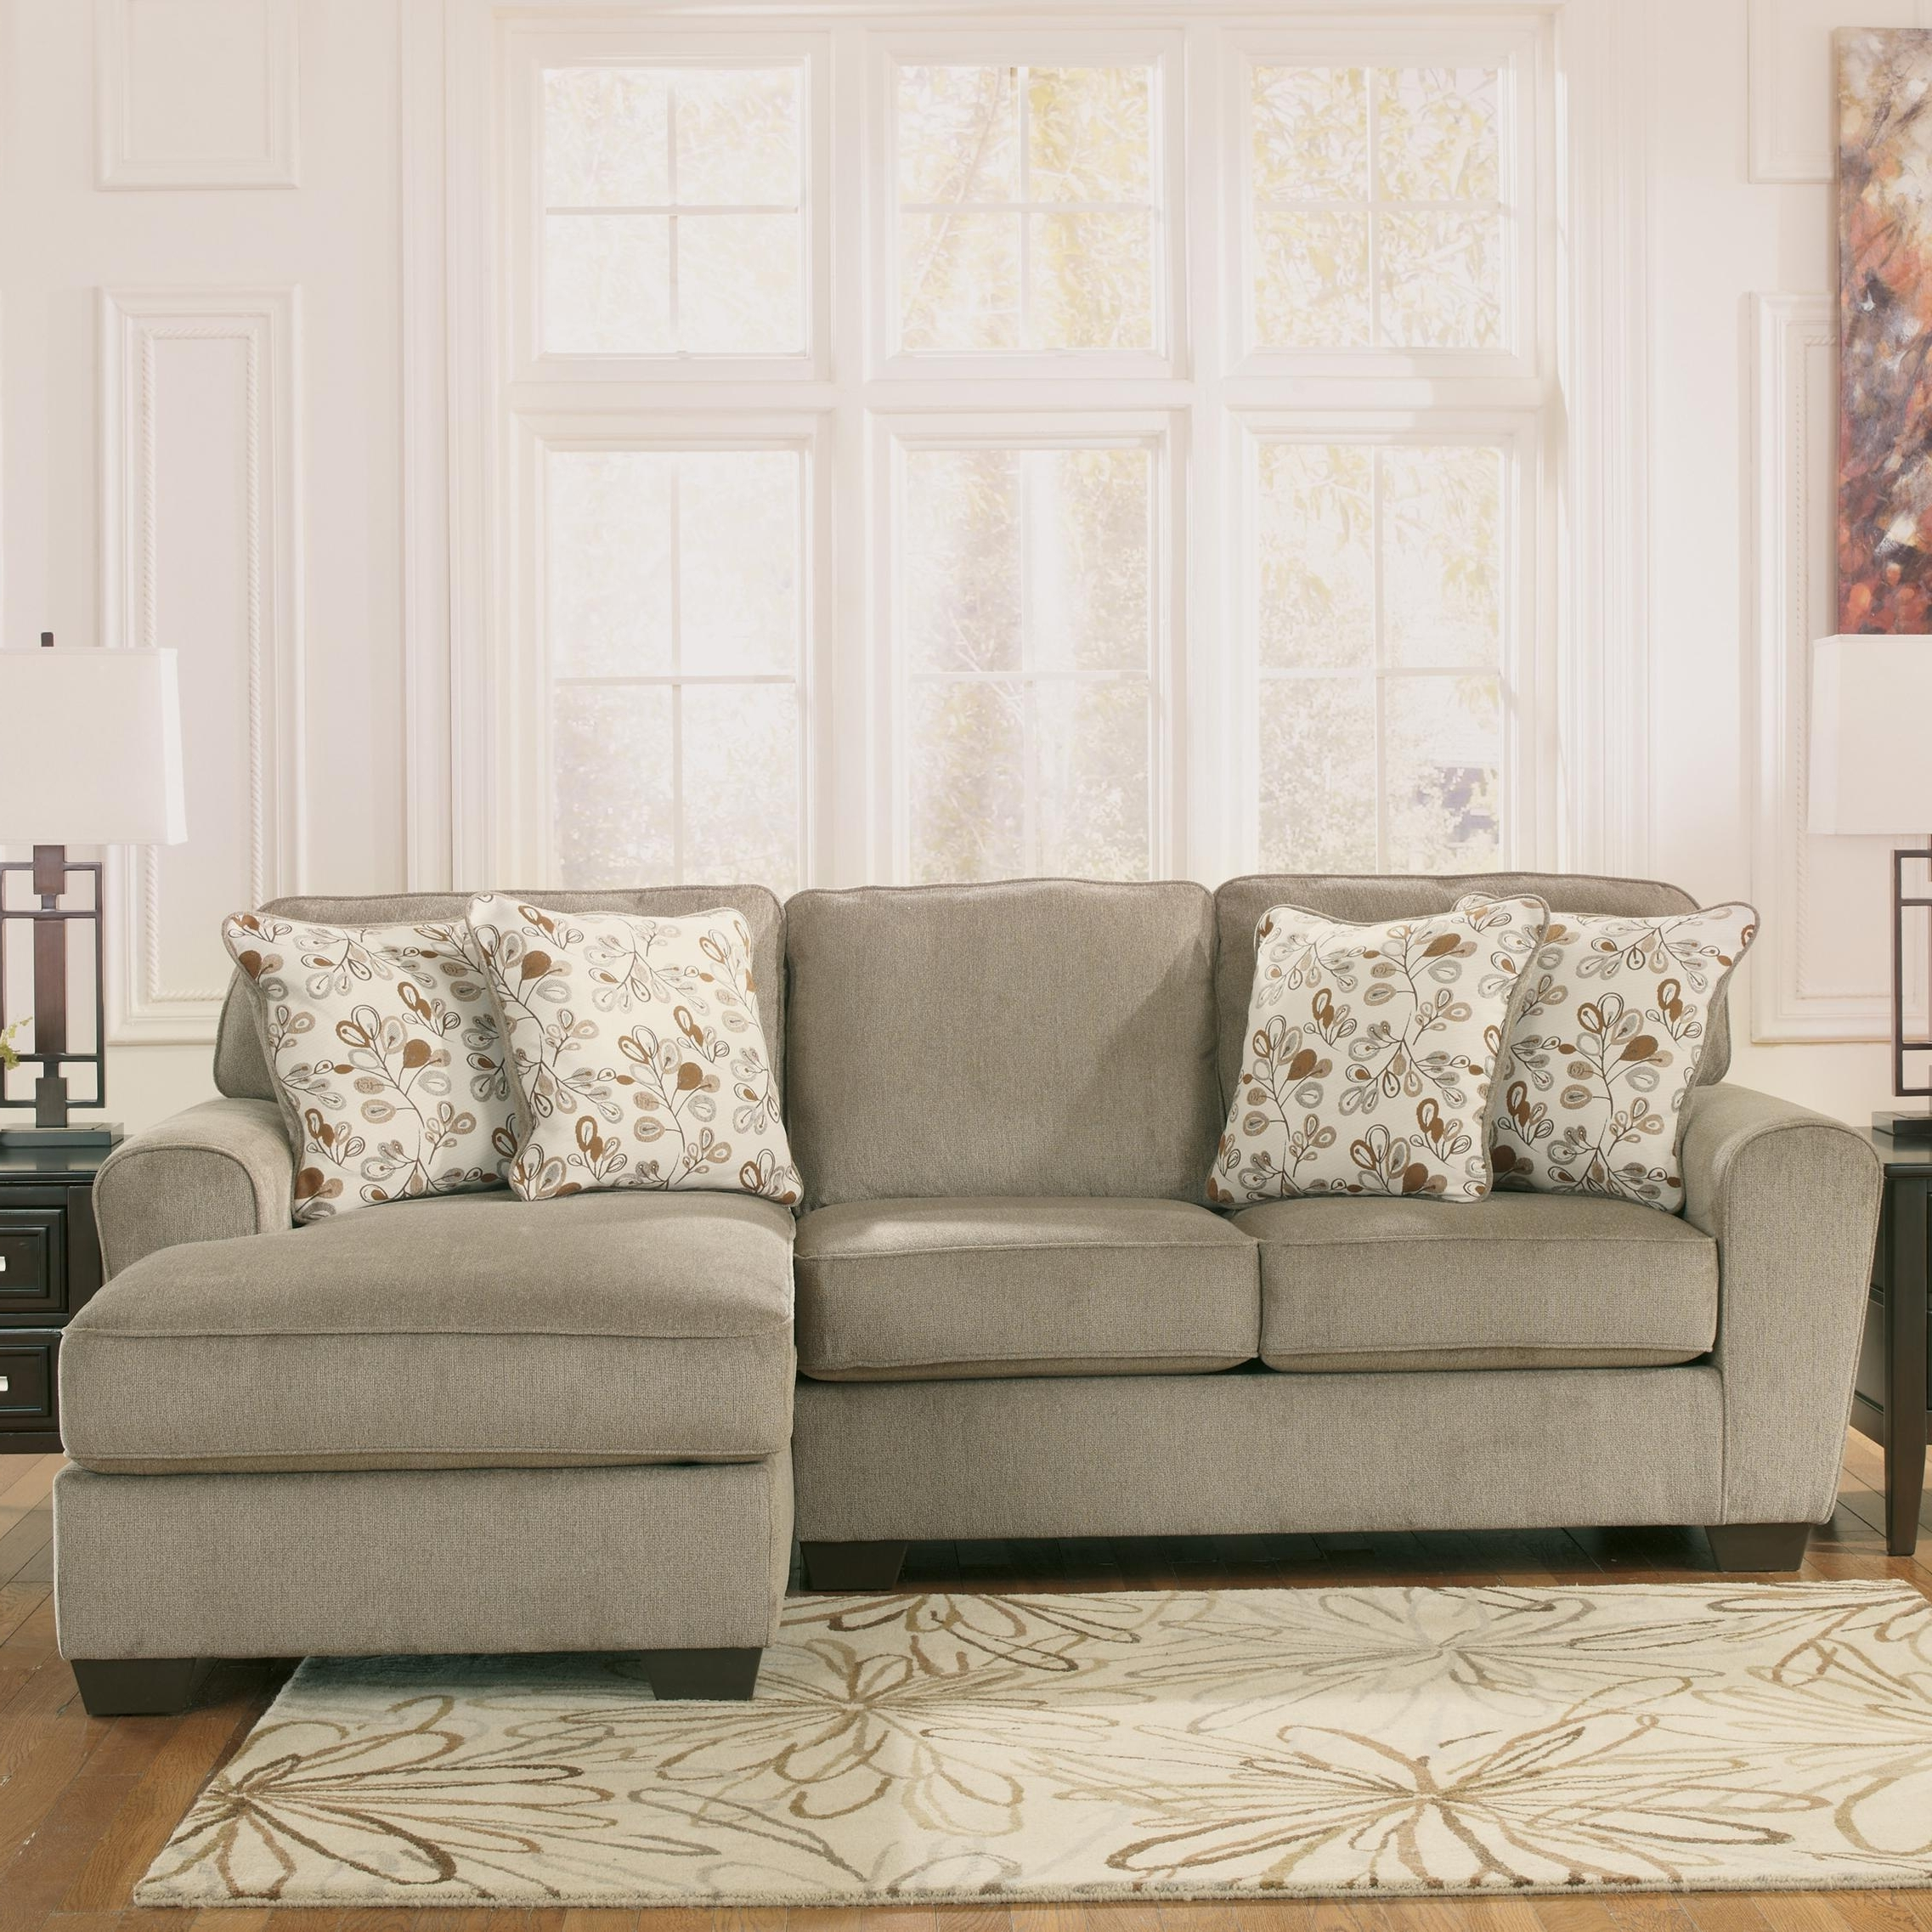 Ashley Furniture Sectional Sofas – Mforum Intended For Most Current 10X8 Sectional Sofas (View 5 of 20)